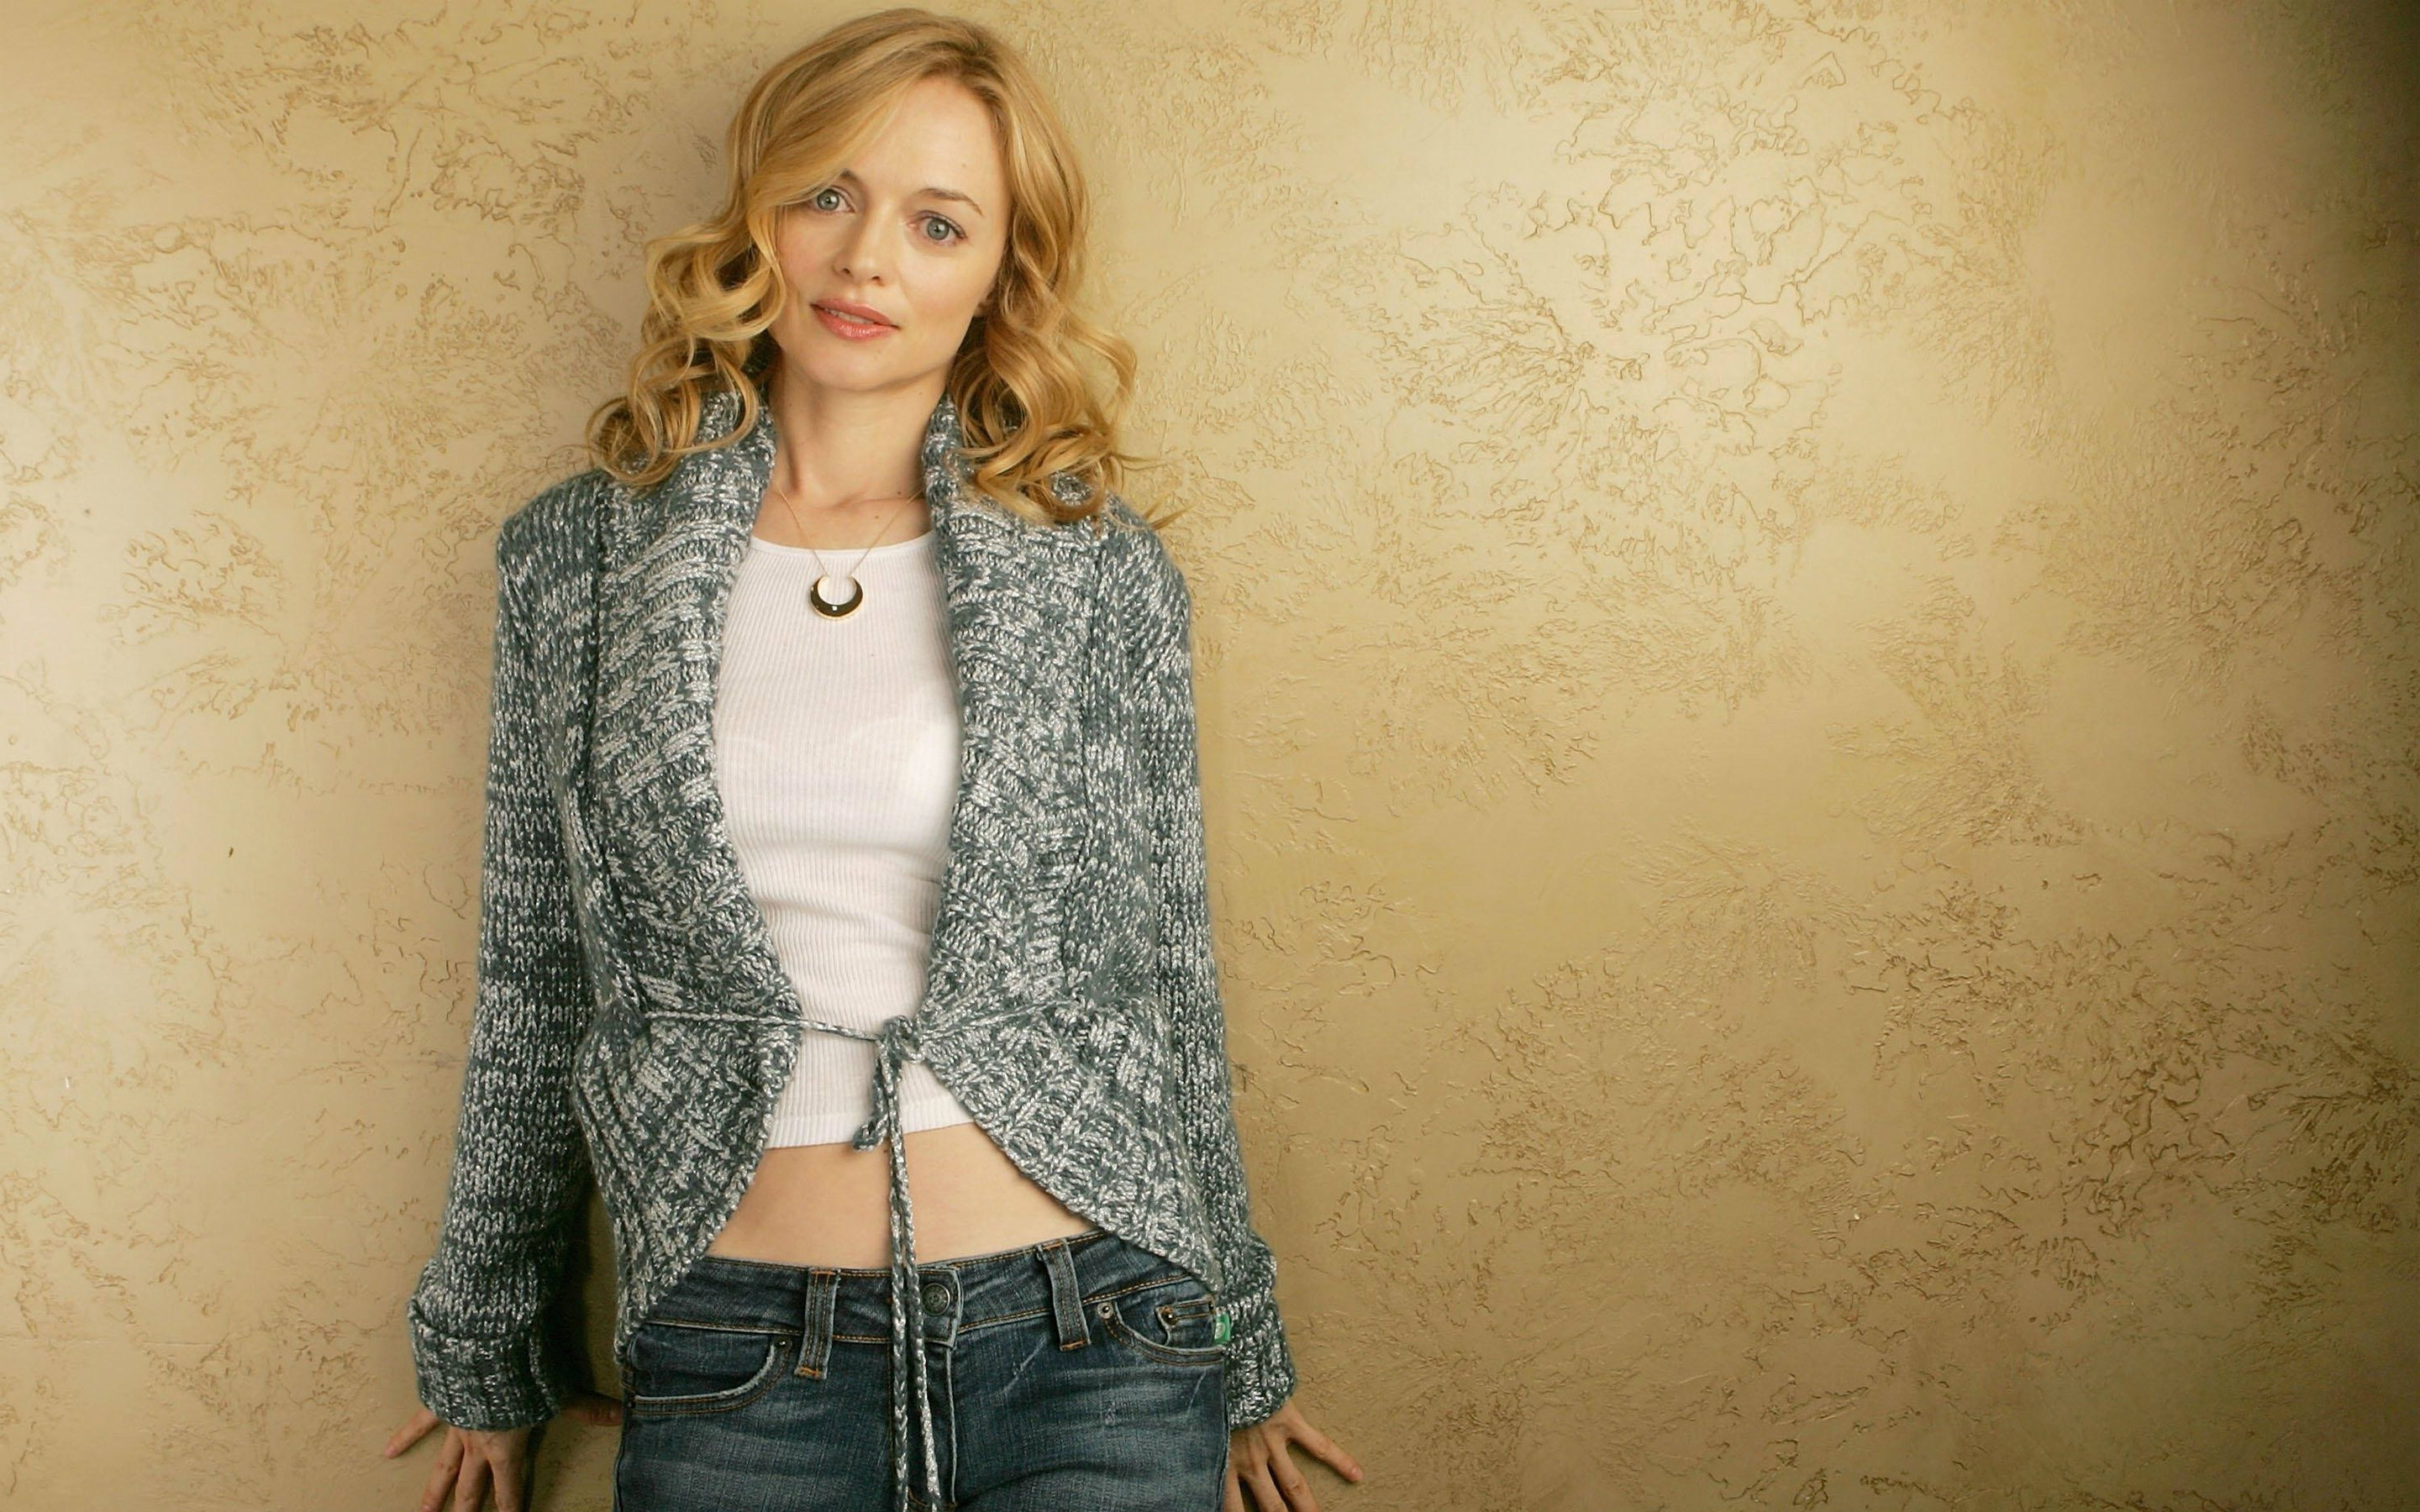 heather graham widescreen wallpaper 56885